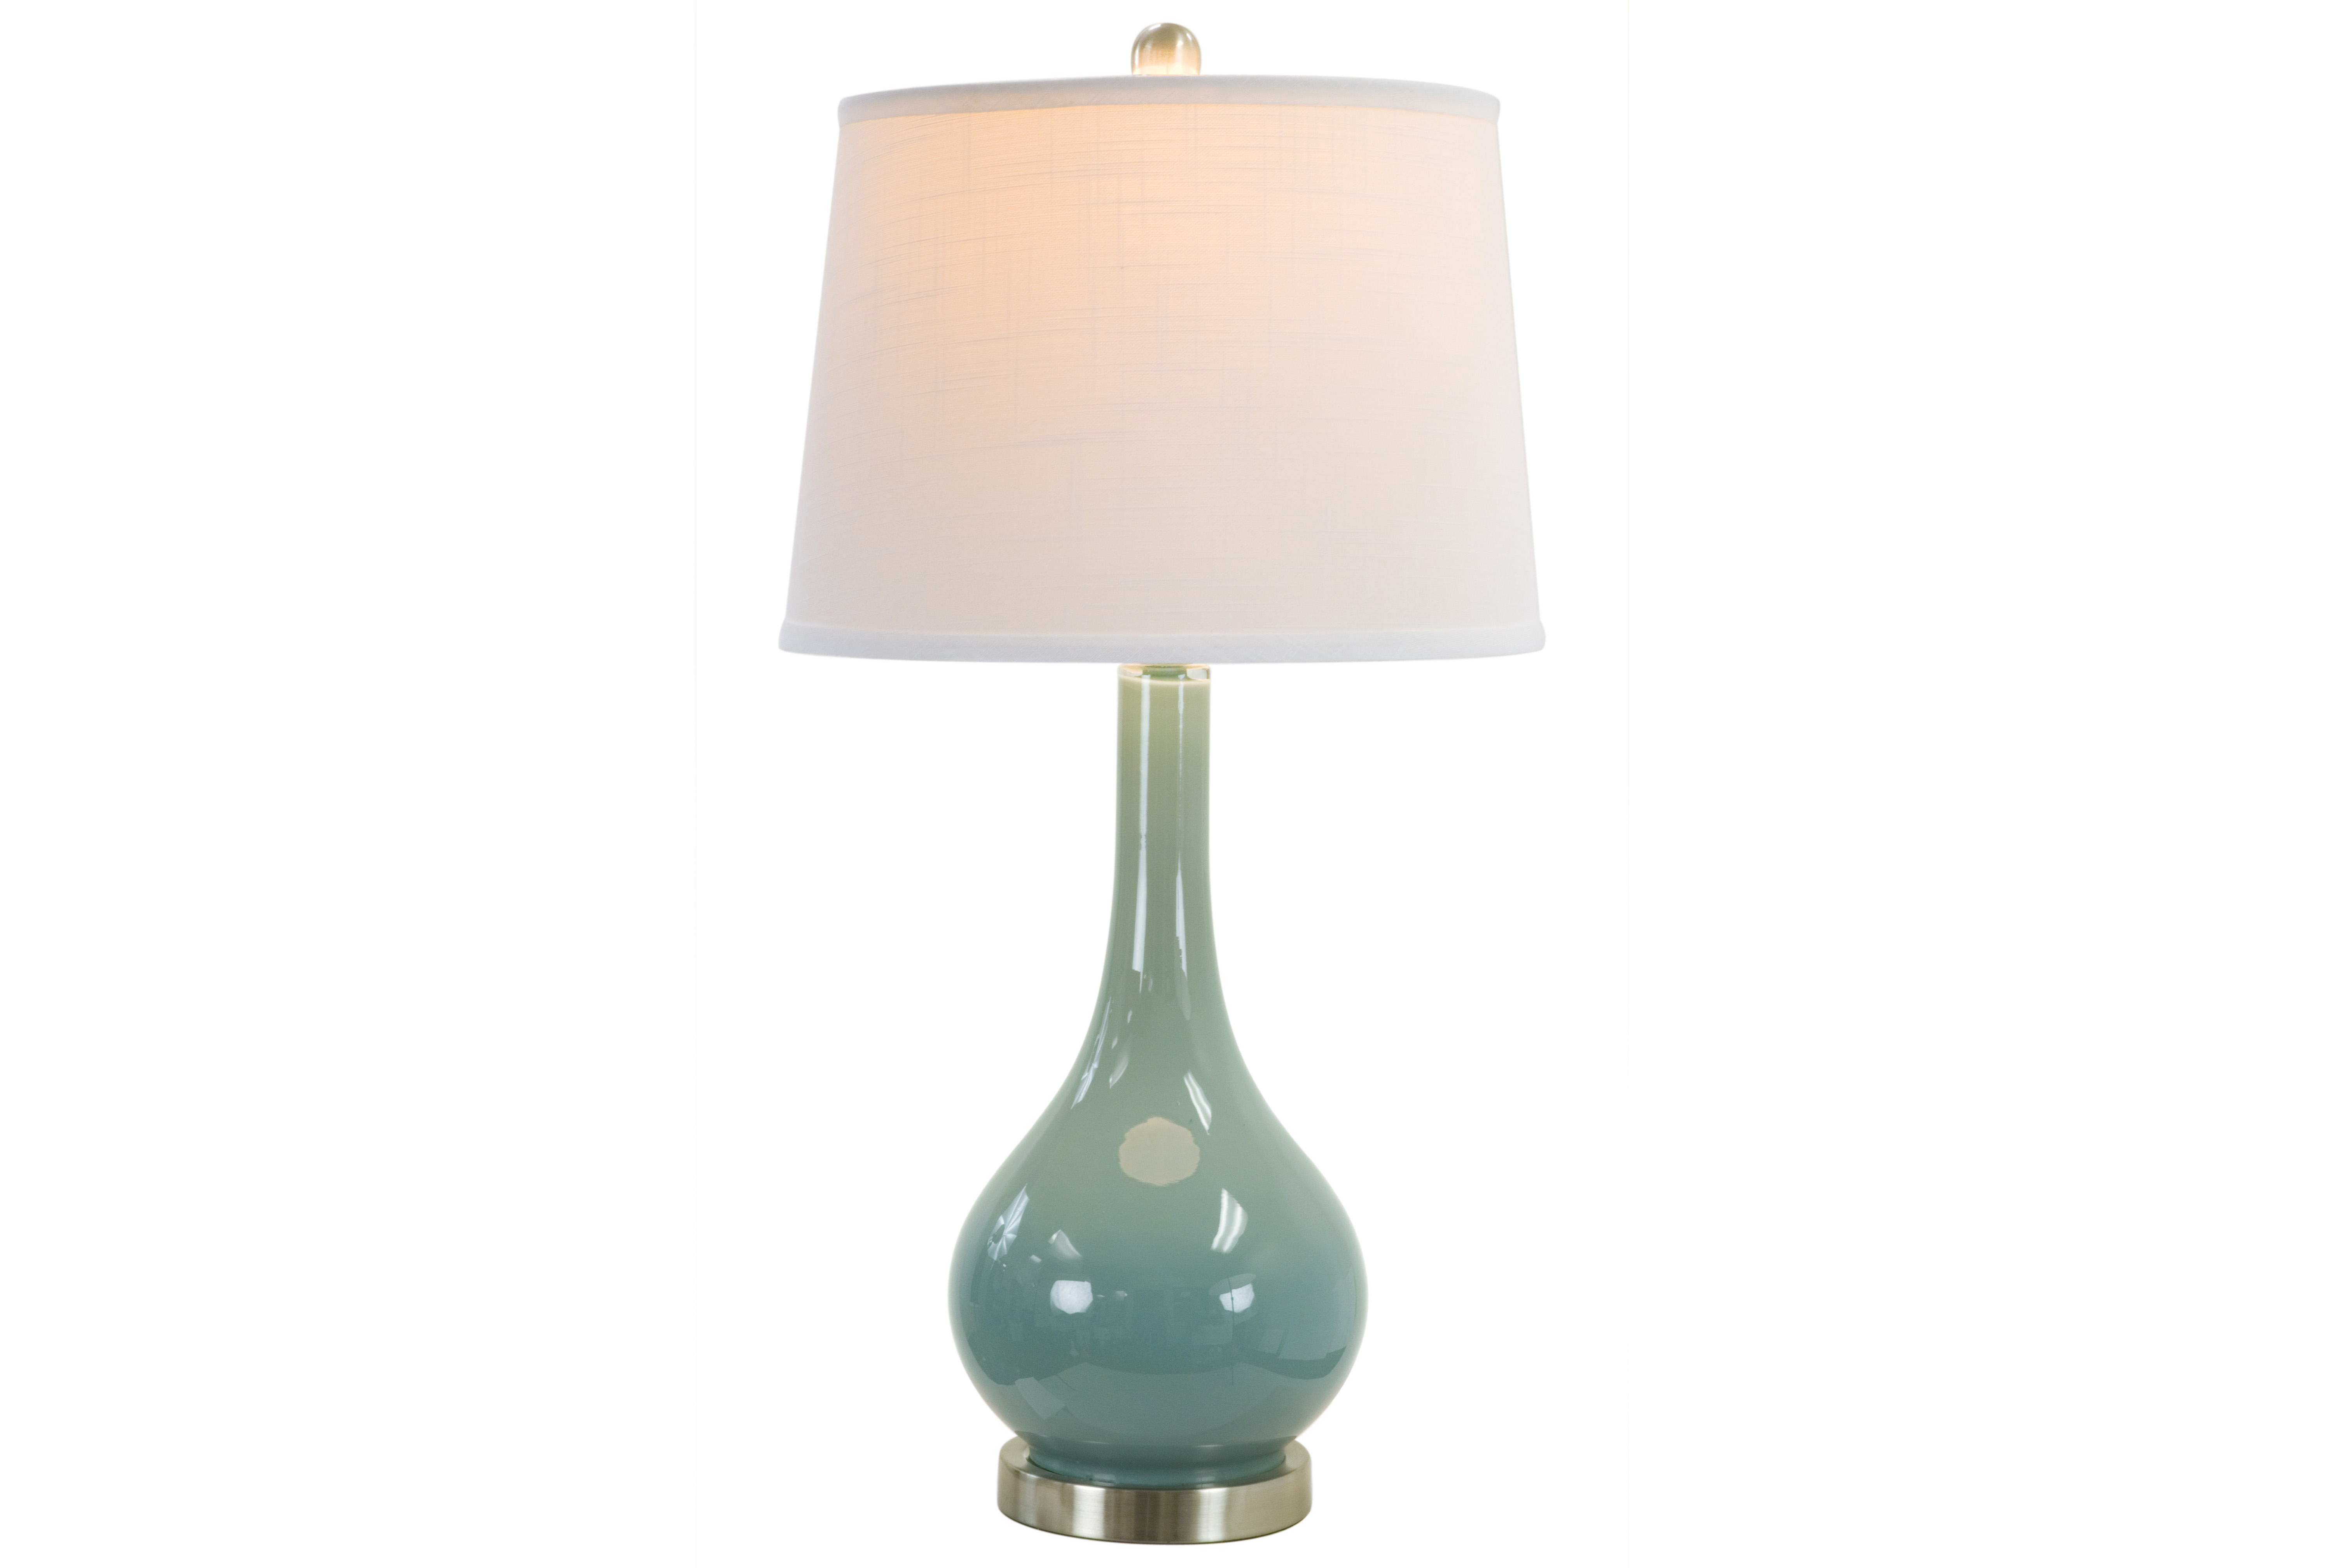 Merveilleux Table Lamp Piper Aqua (Qty: 1) Has Been Successfully Added To Your Cart.